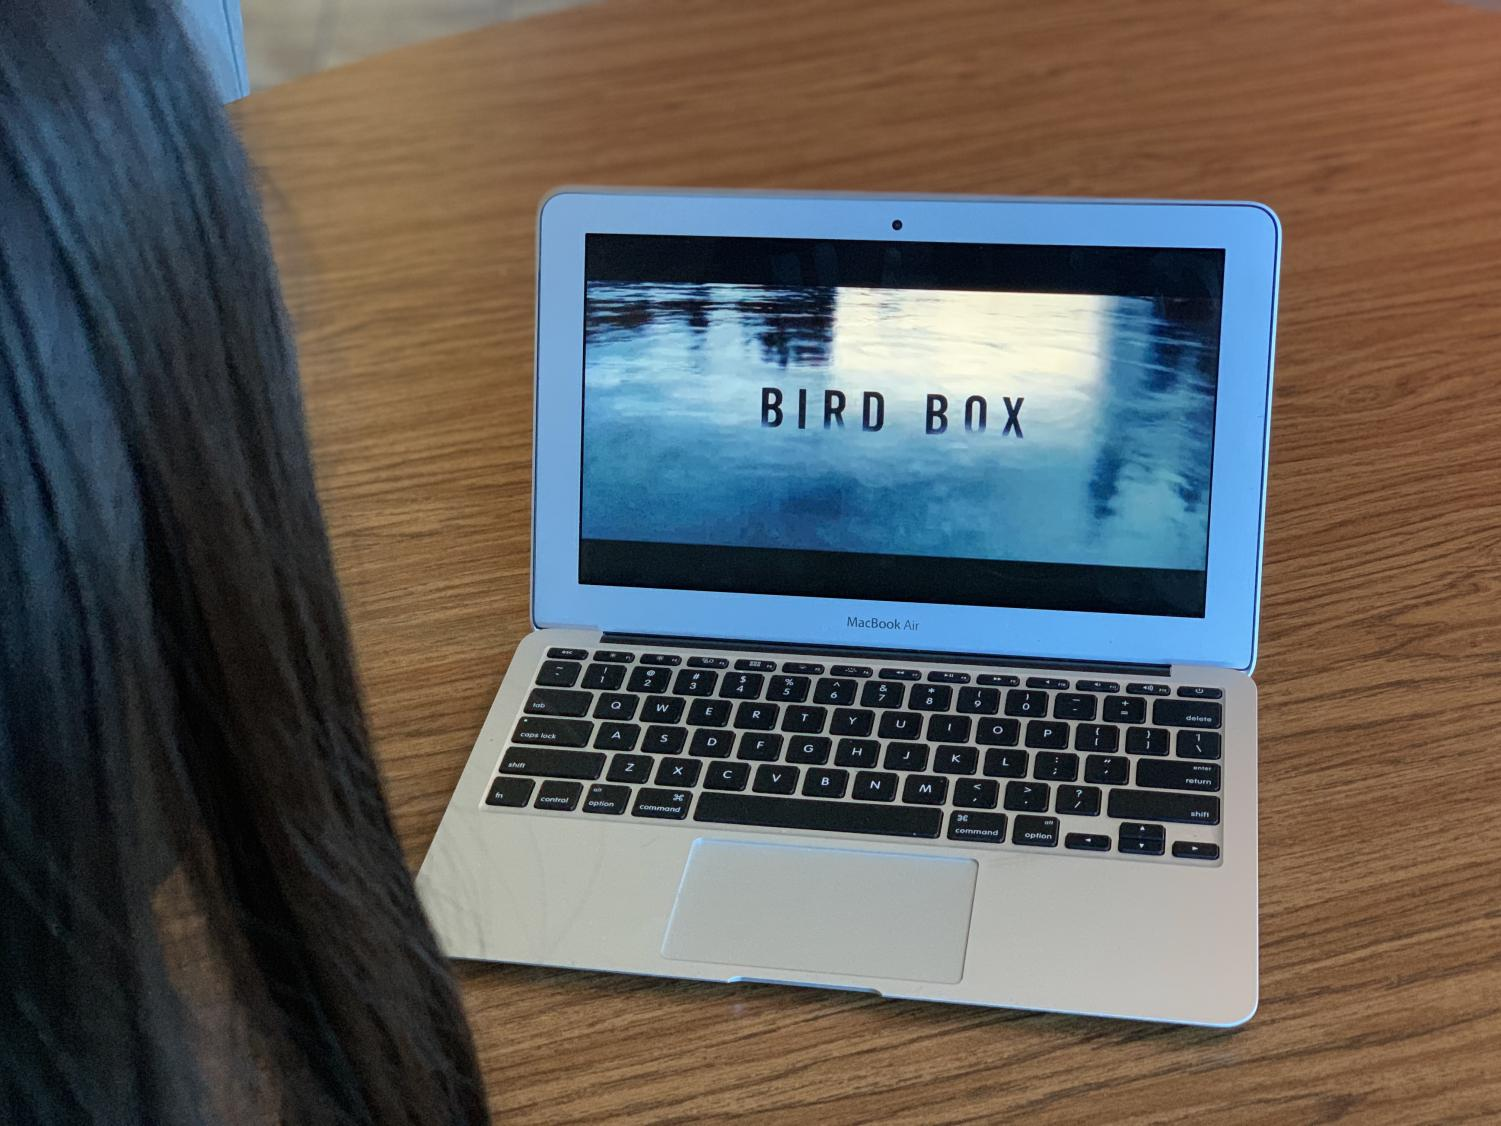 Bird Box captivated viewers with a thrilling pot and a chilling theme.